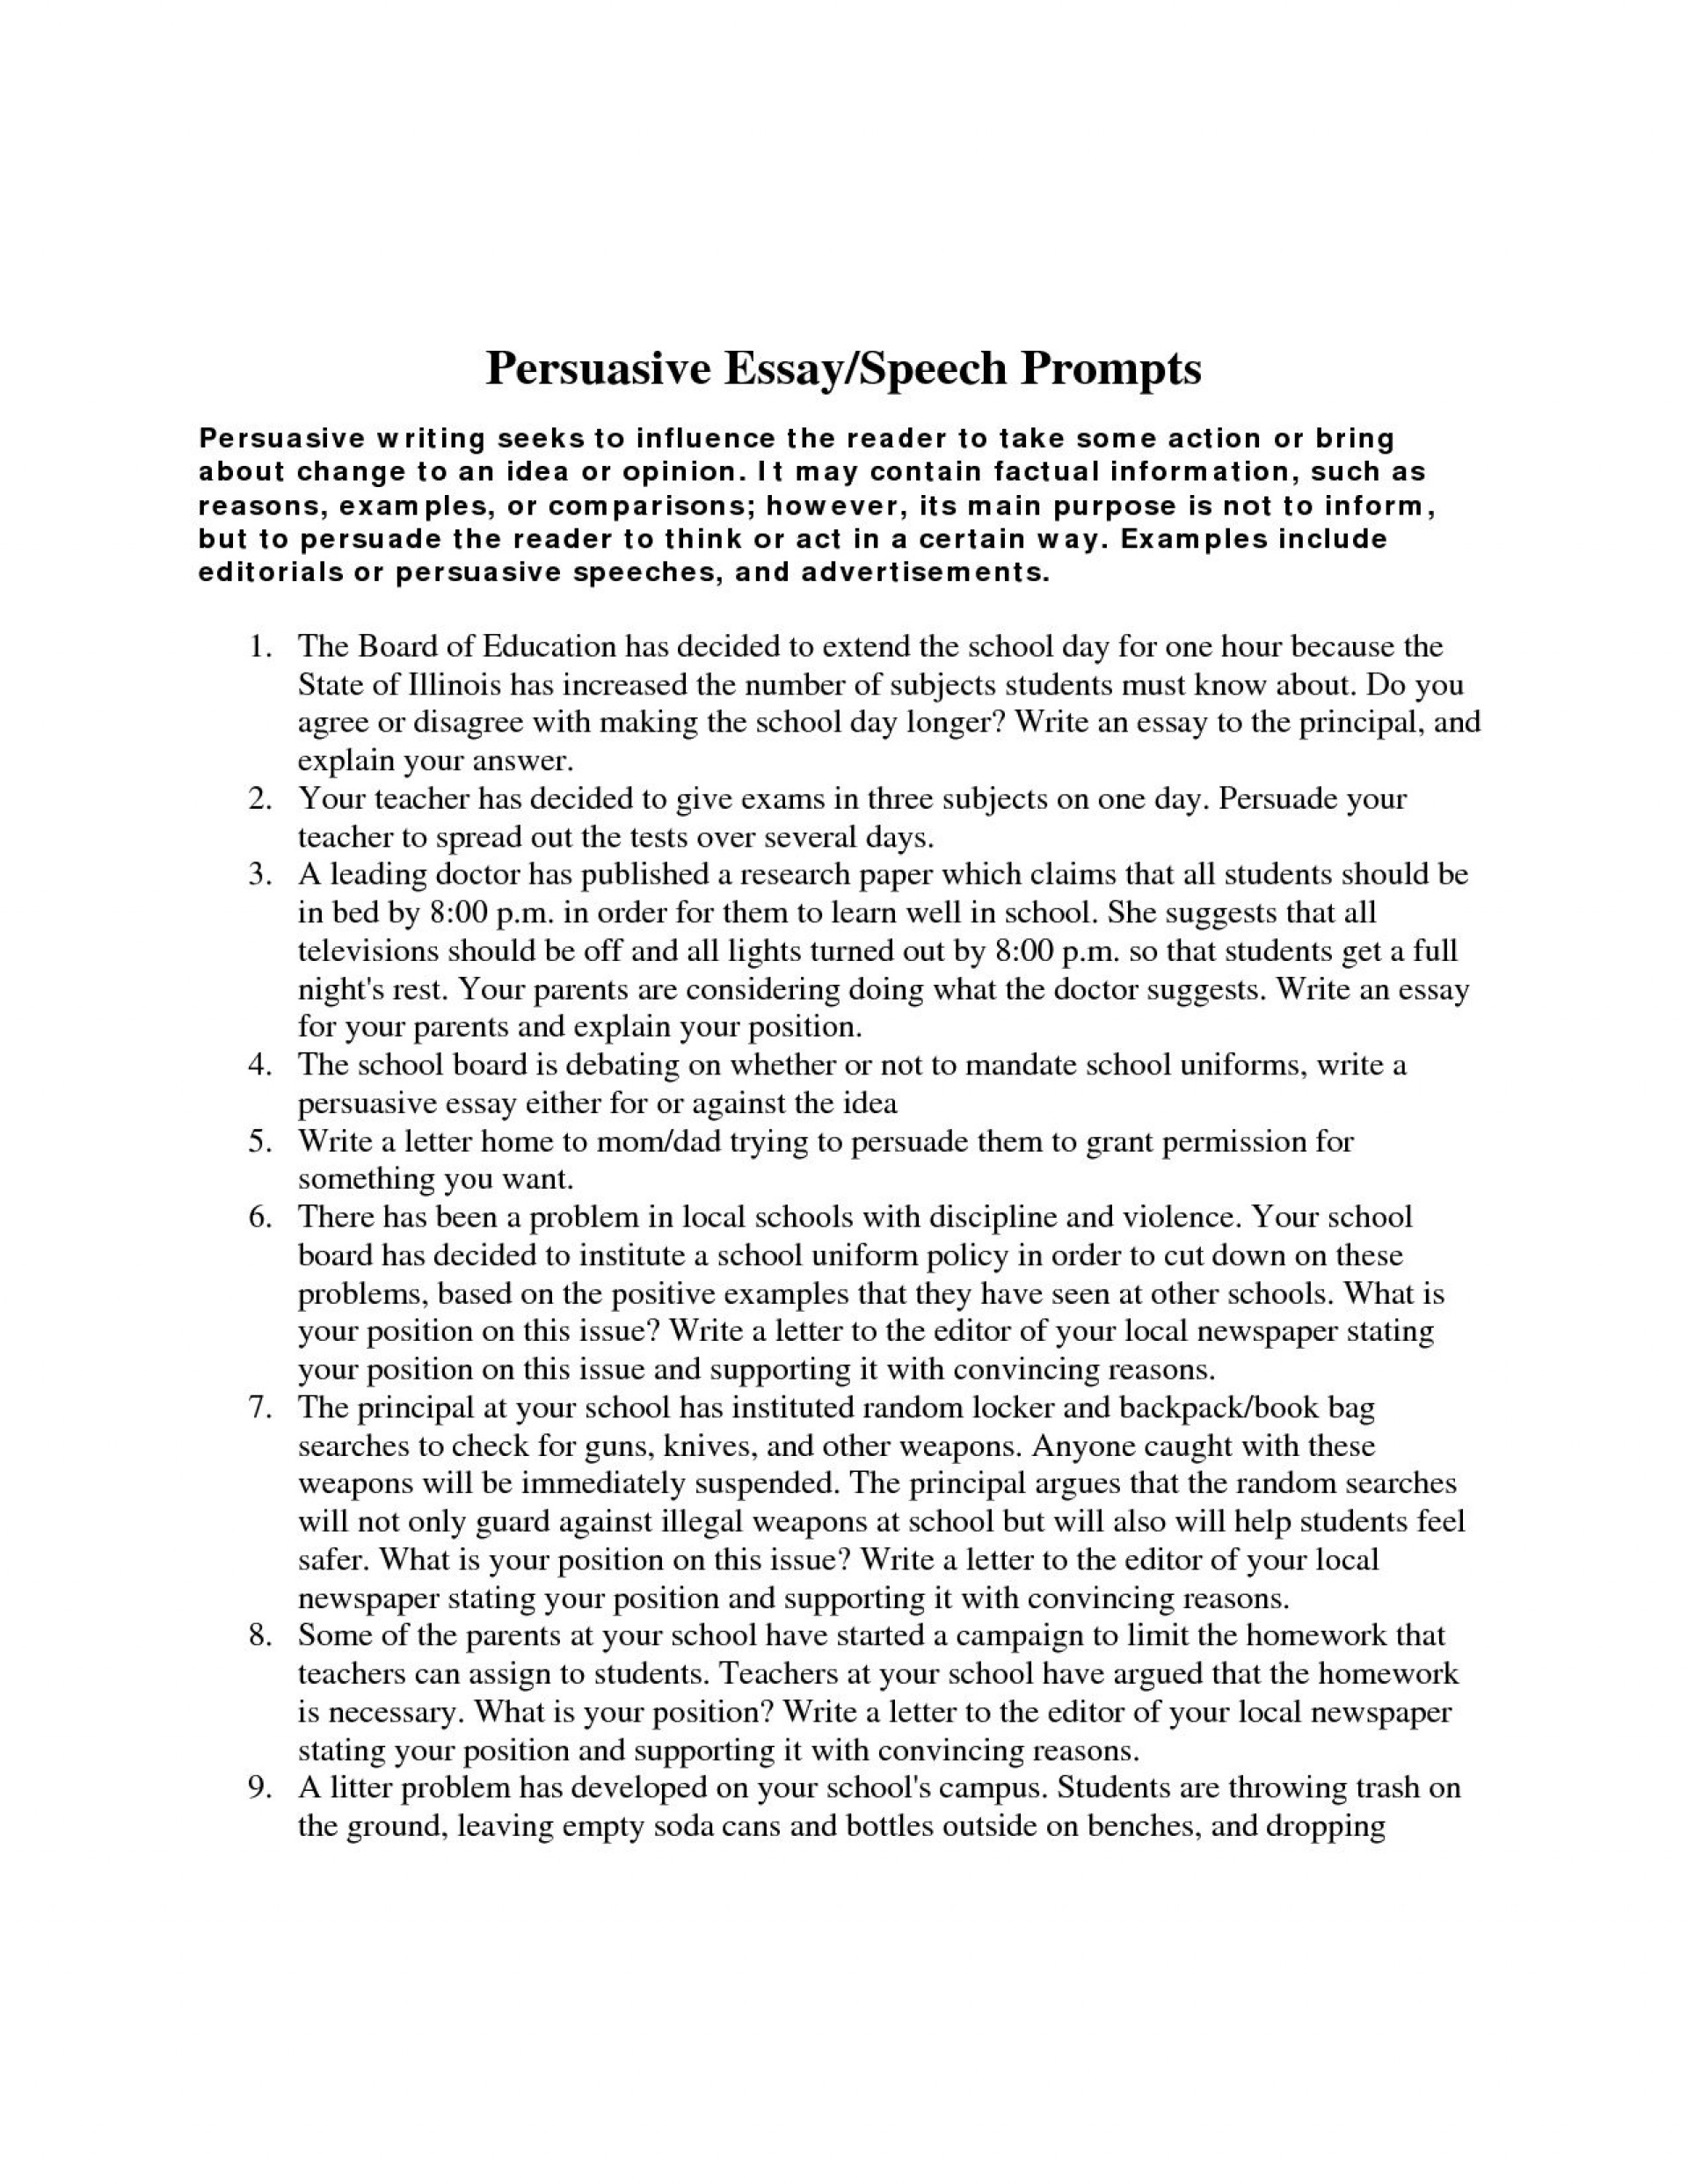 007 Persuasive Essay Example Writing Prompts High School Students Argumentative Speech Topics For Sample Good Dreaded Definition And Examples Kids Rubric 1920